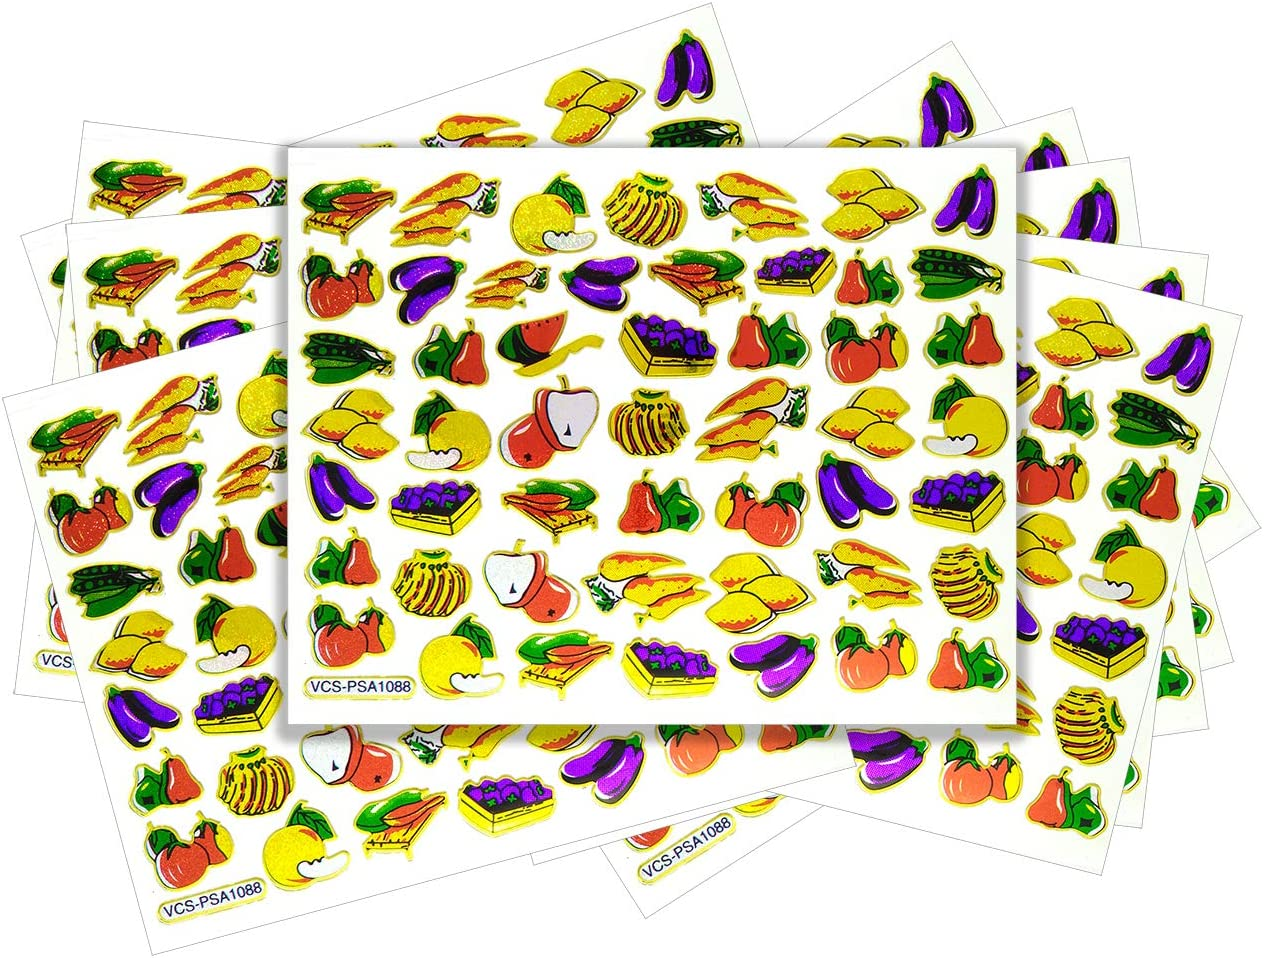 Veggie - 10 Sheets Fresh Fruit and Vegetable Self-Adhesive Glitter Metallic Foil Reflective Sticker Decorative Scrapbook for Kid, Birthday Party, Photo, Card, Diary, Album